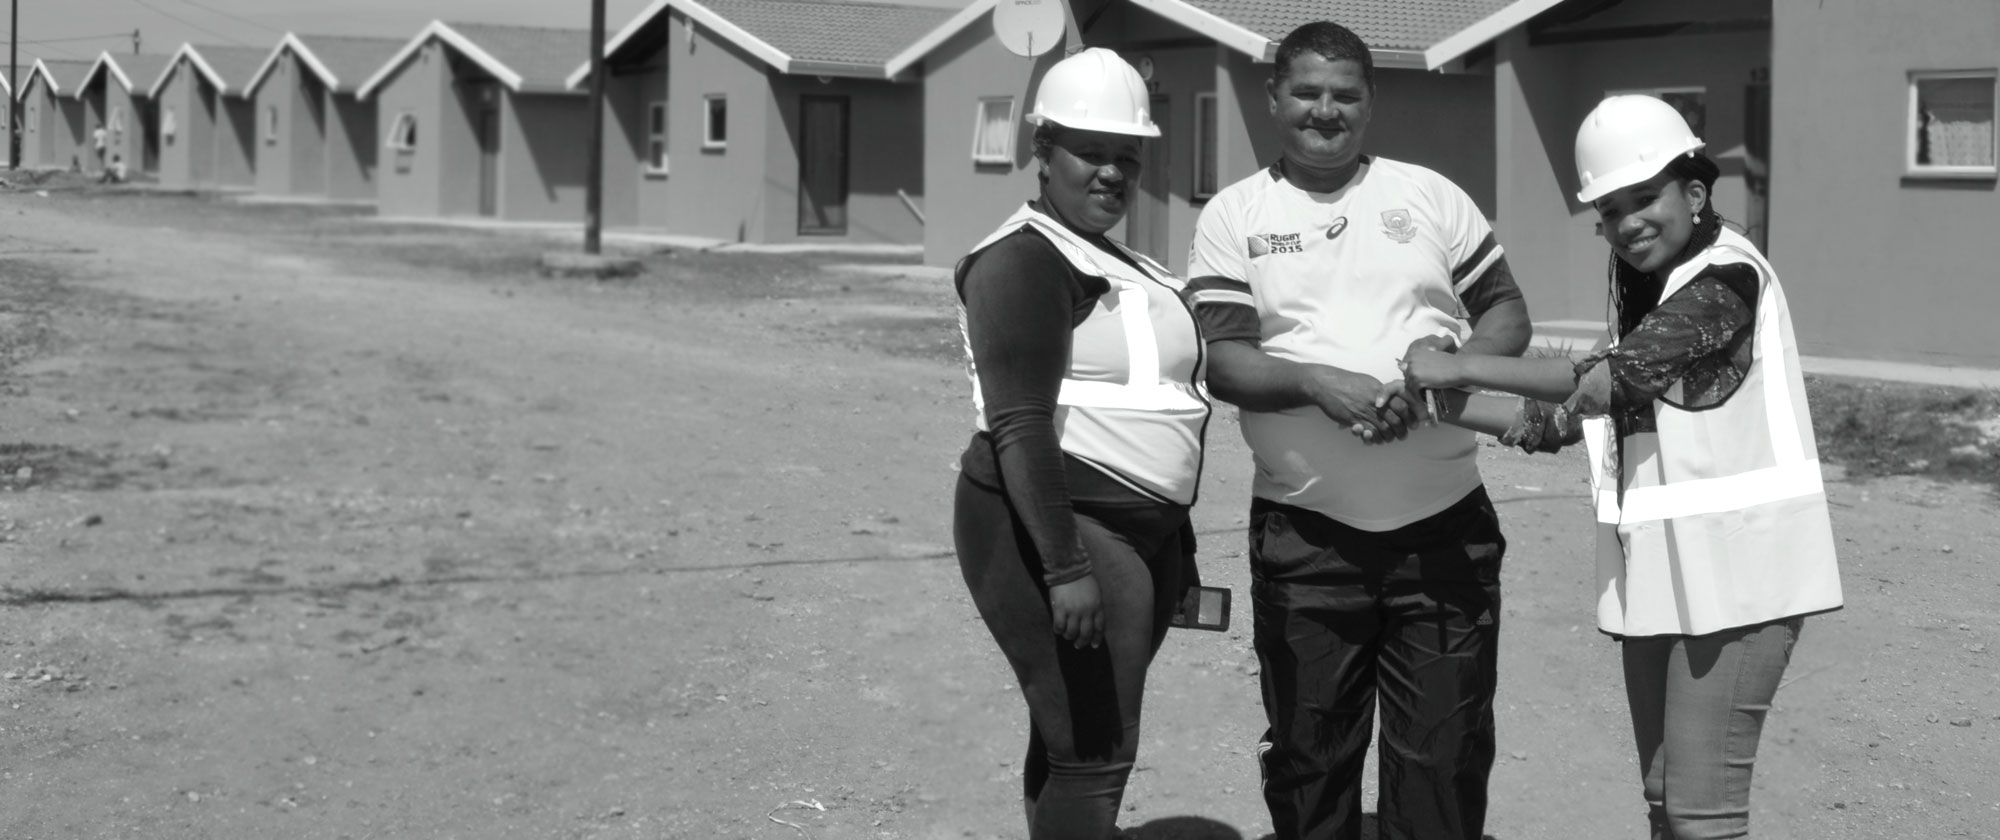 Ntsiki handing over the keys to a happy new home owner